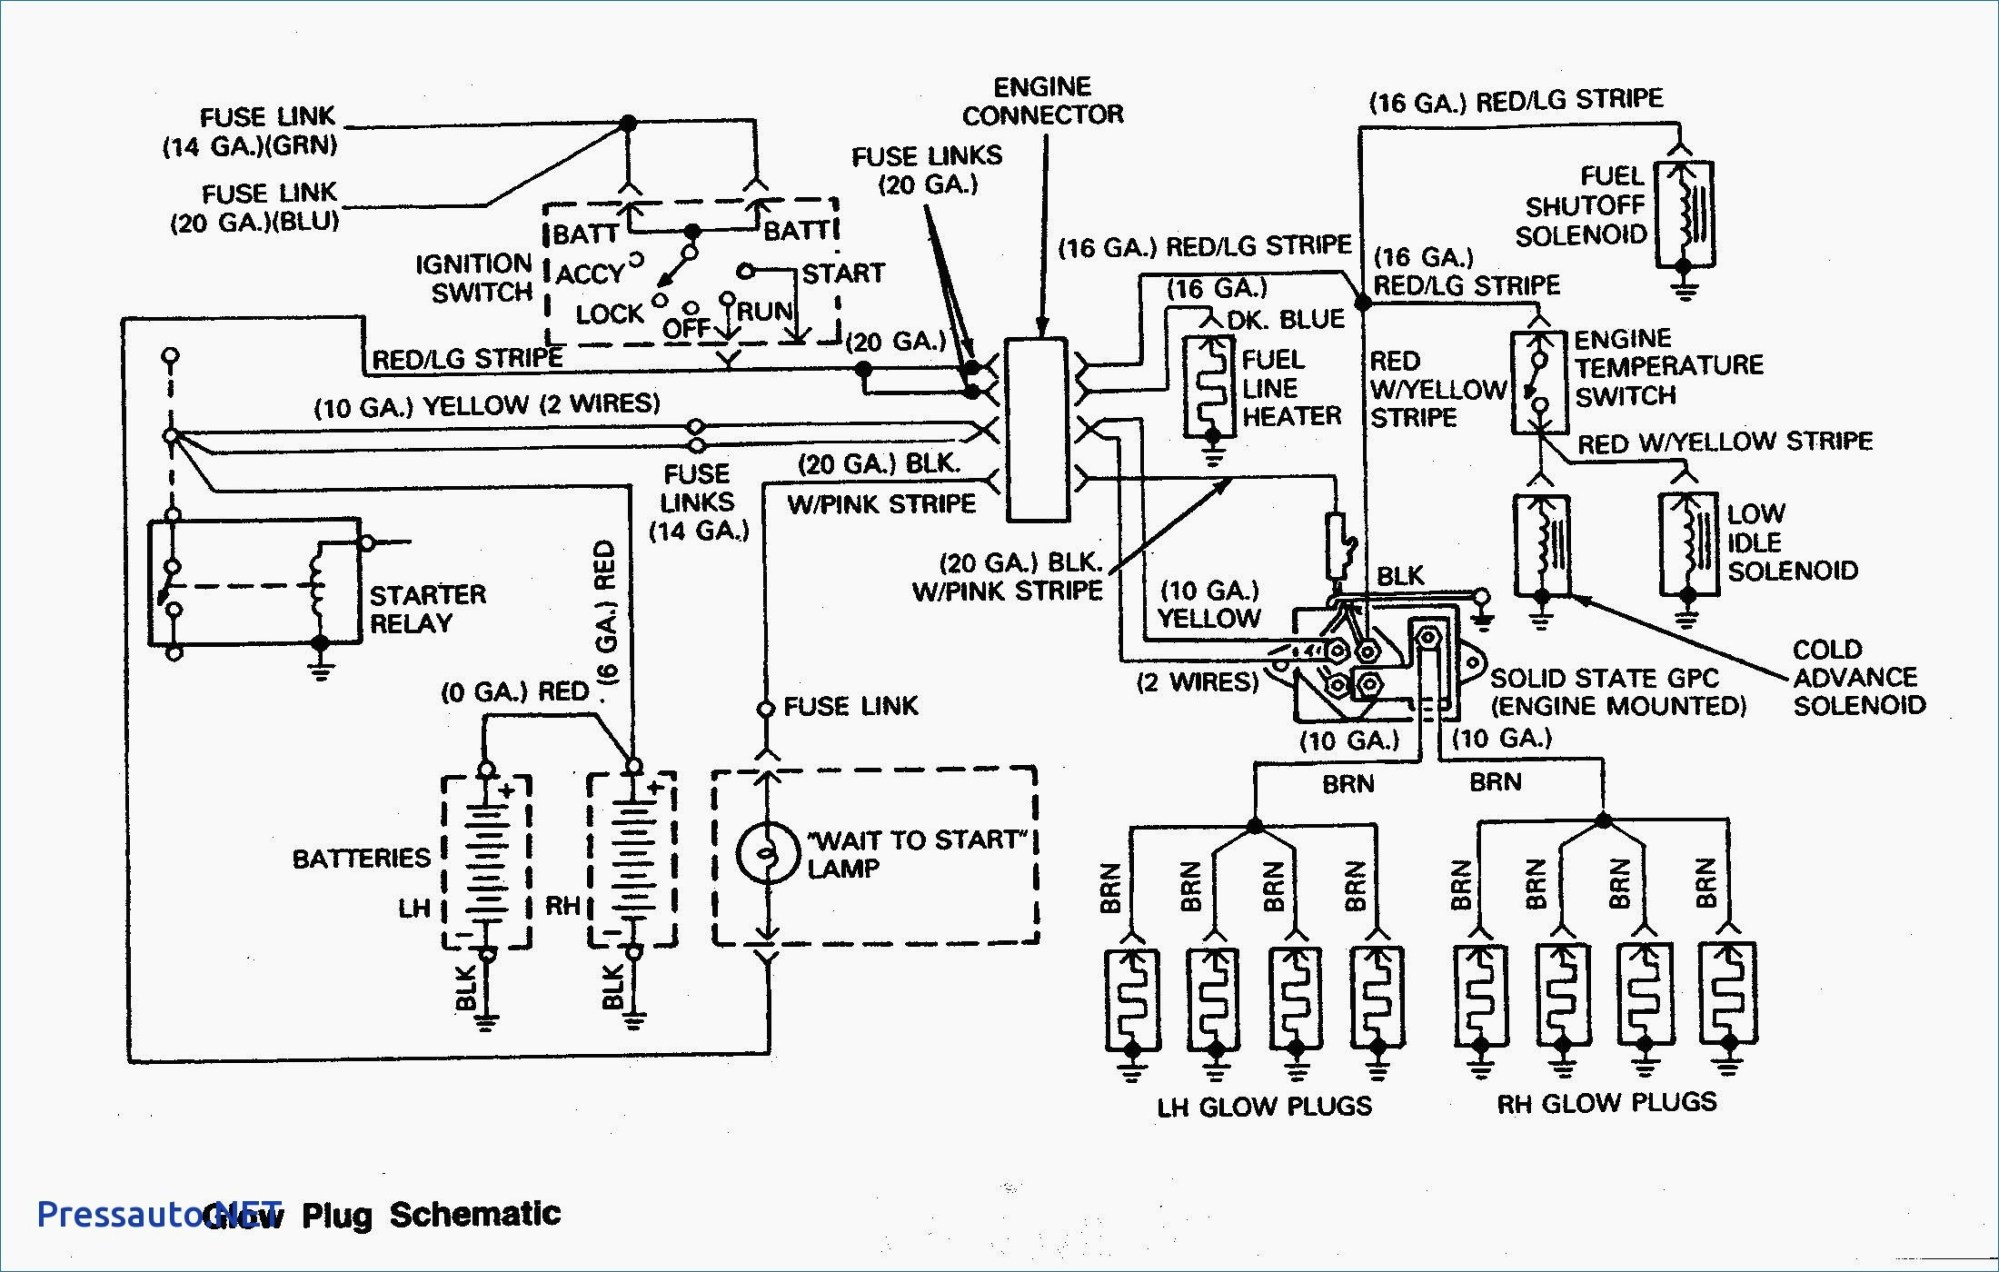 hight resolution of lb7 ficm wiring diagram wiring diagram advance lb7 duramax engine wiring diagram ficm wiring diagram wiring